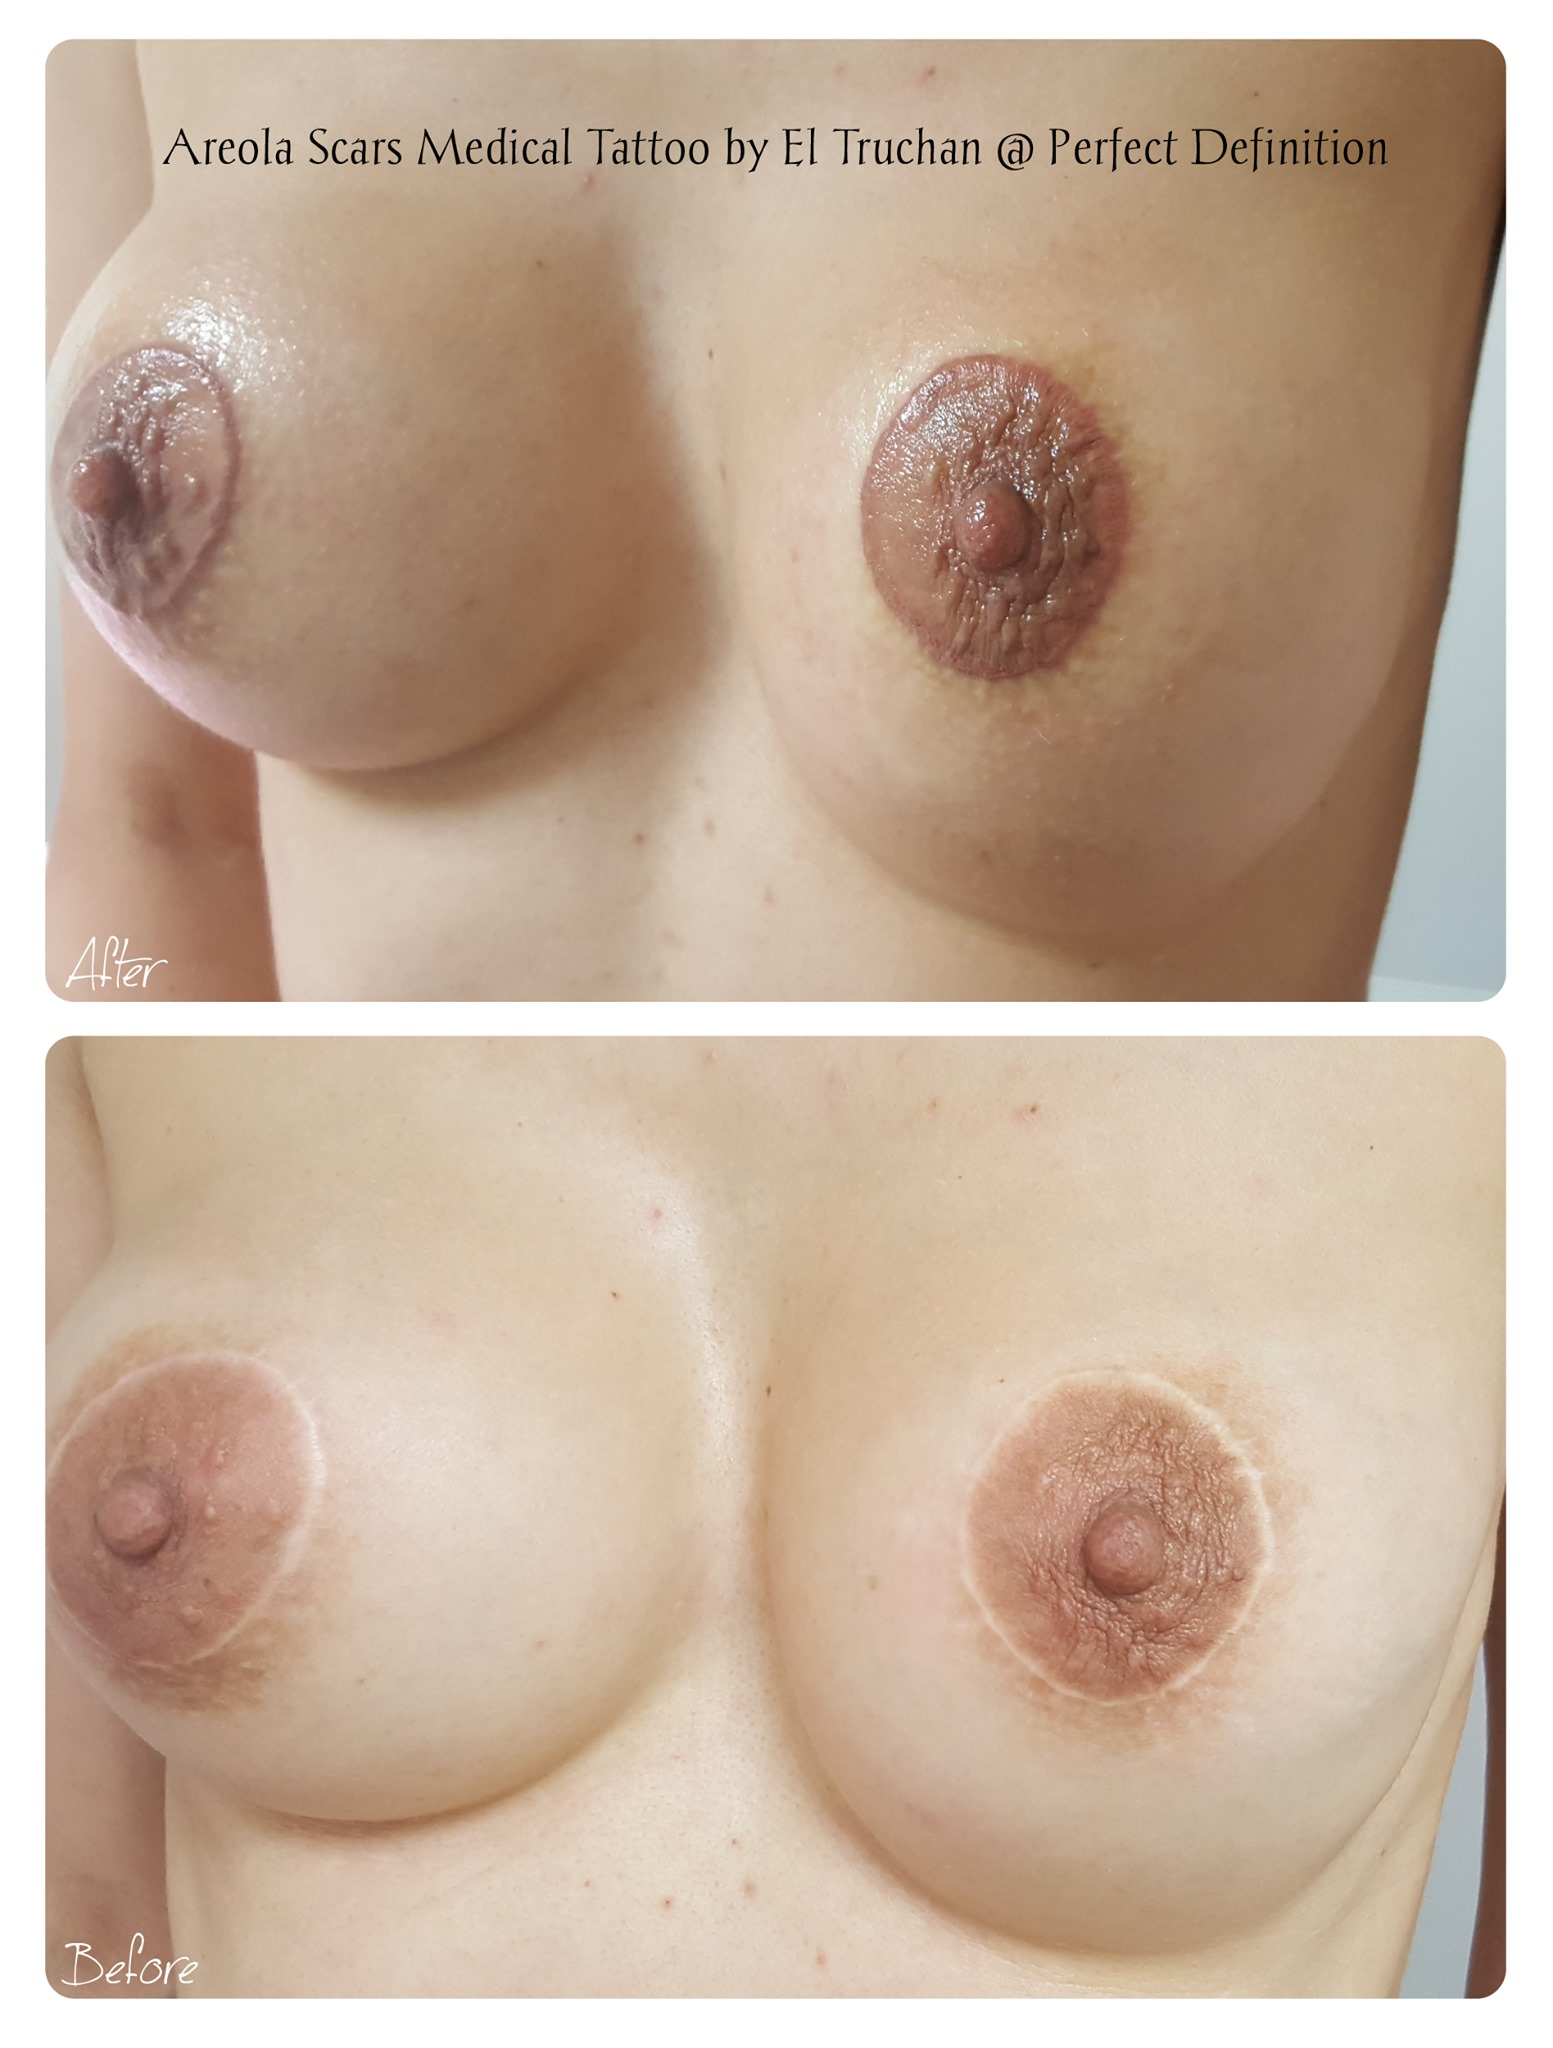 Areola Scars Medical Tattoo by El Trucha